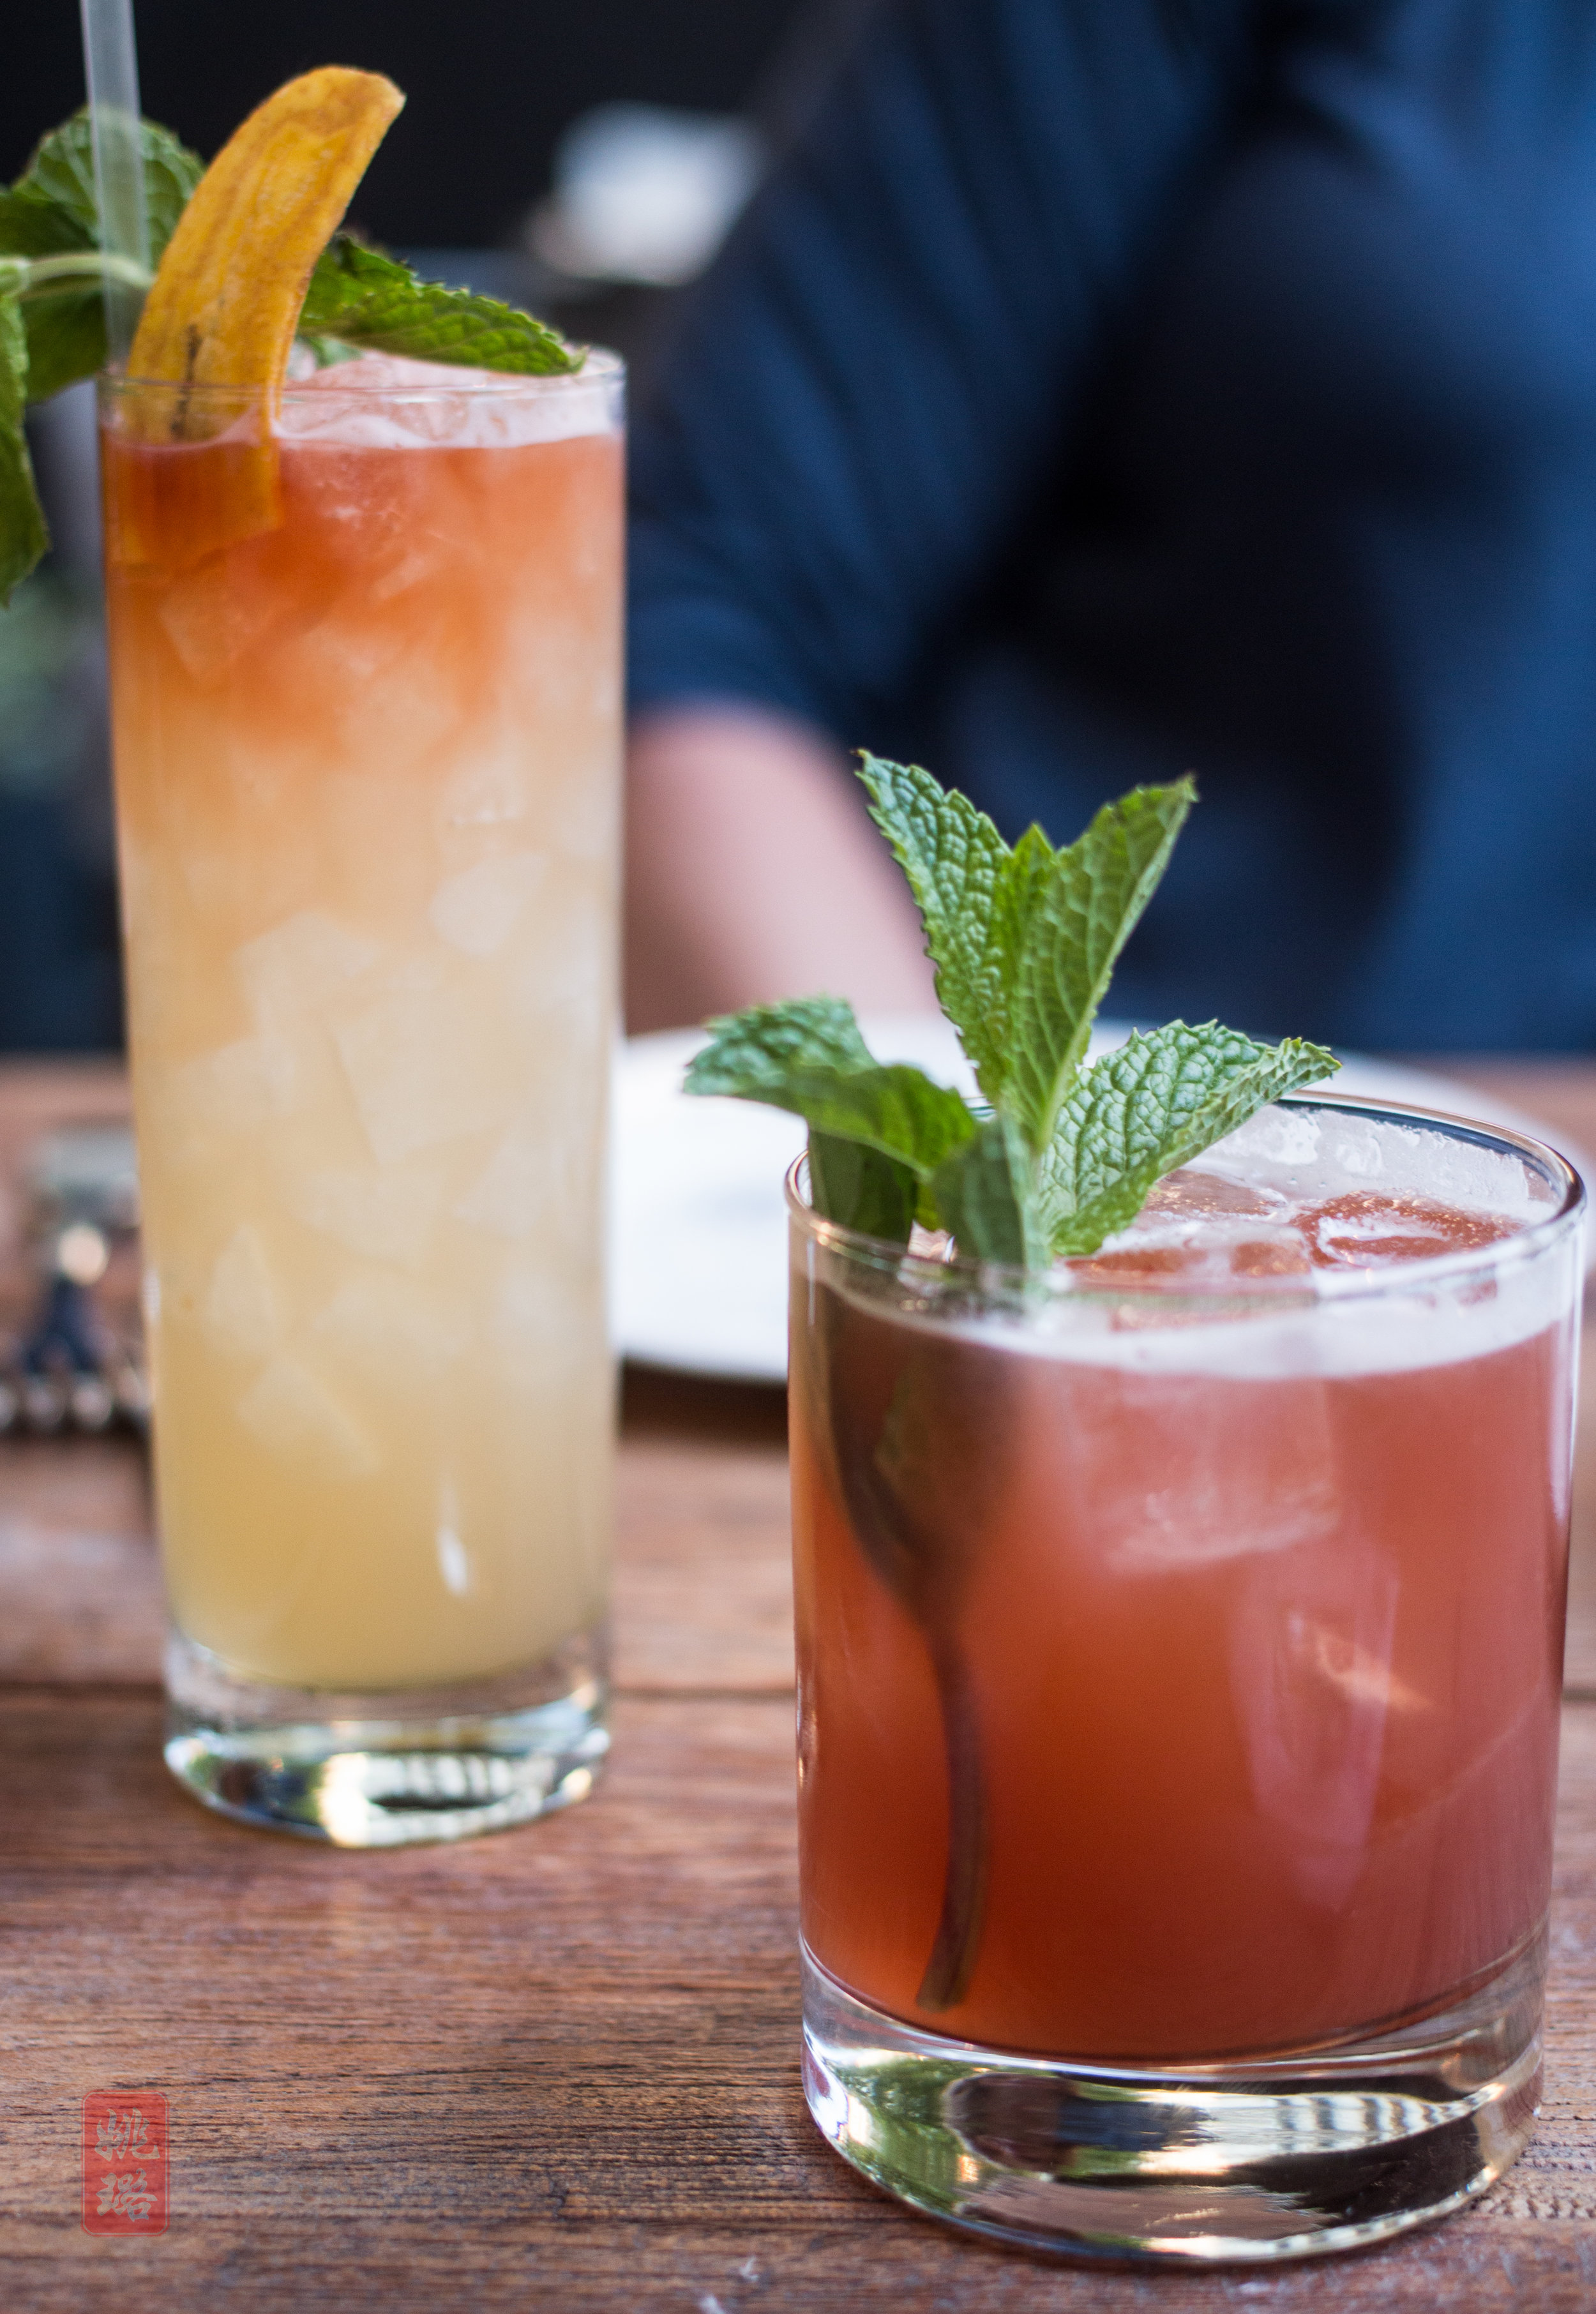 - Start with a refreshing cocktail that transports you to the tropics!